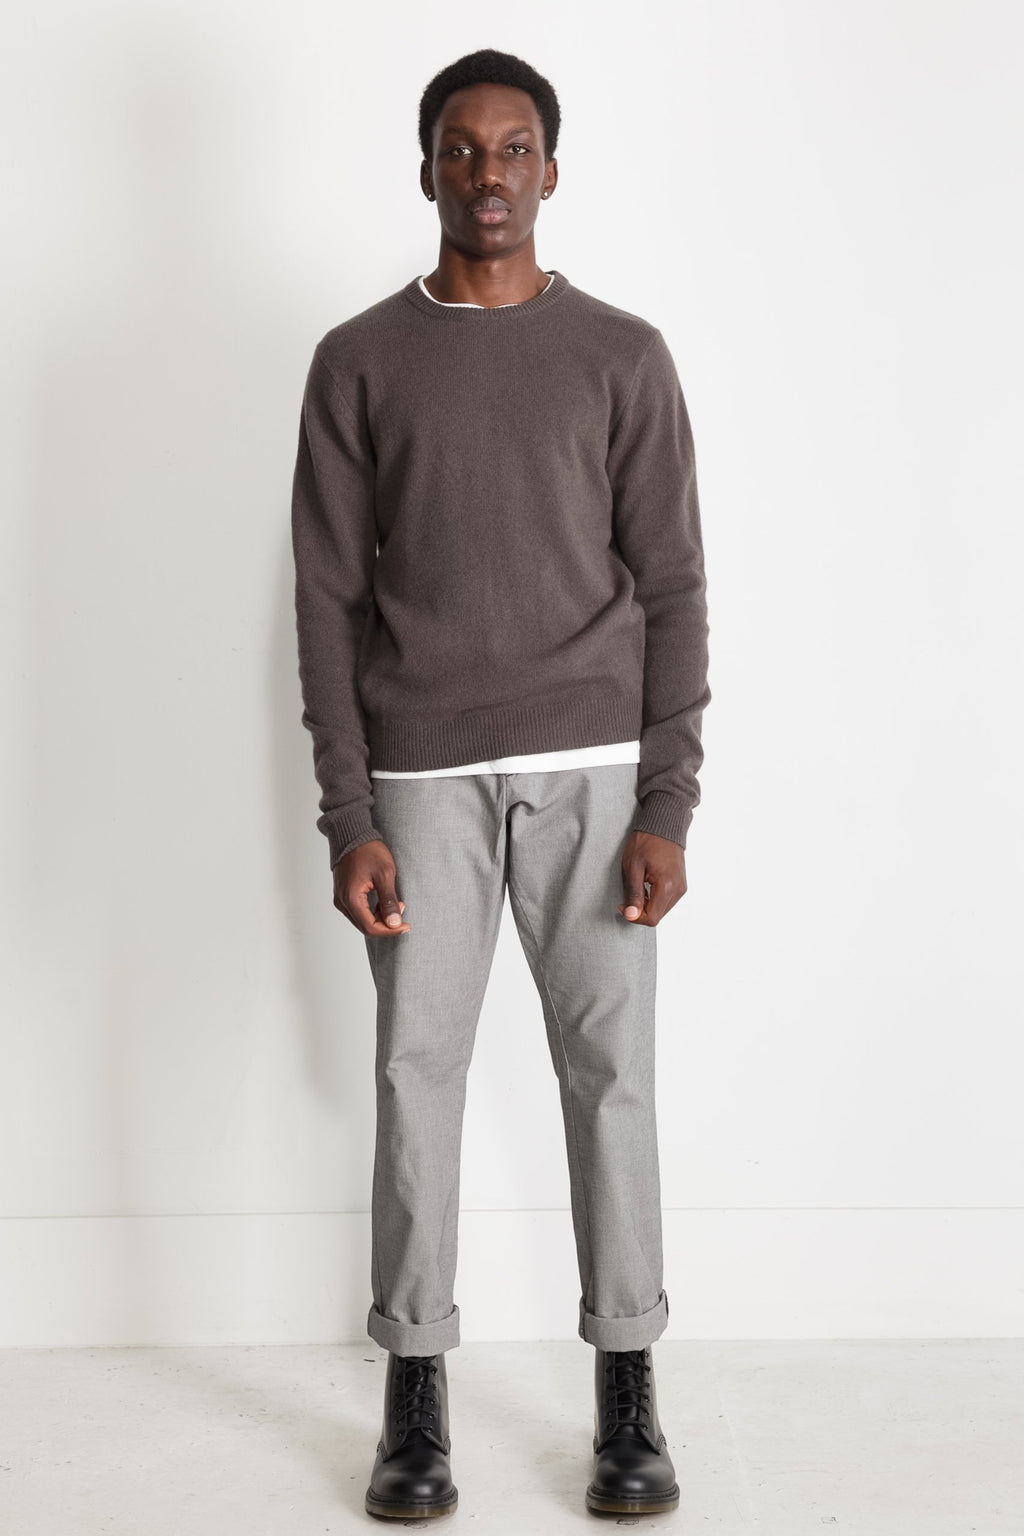 New Wool Crew Neck in Taupe 02